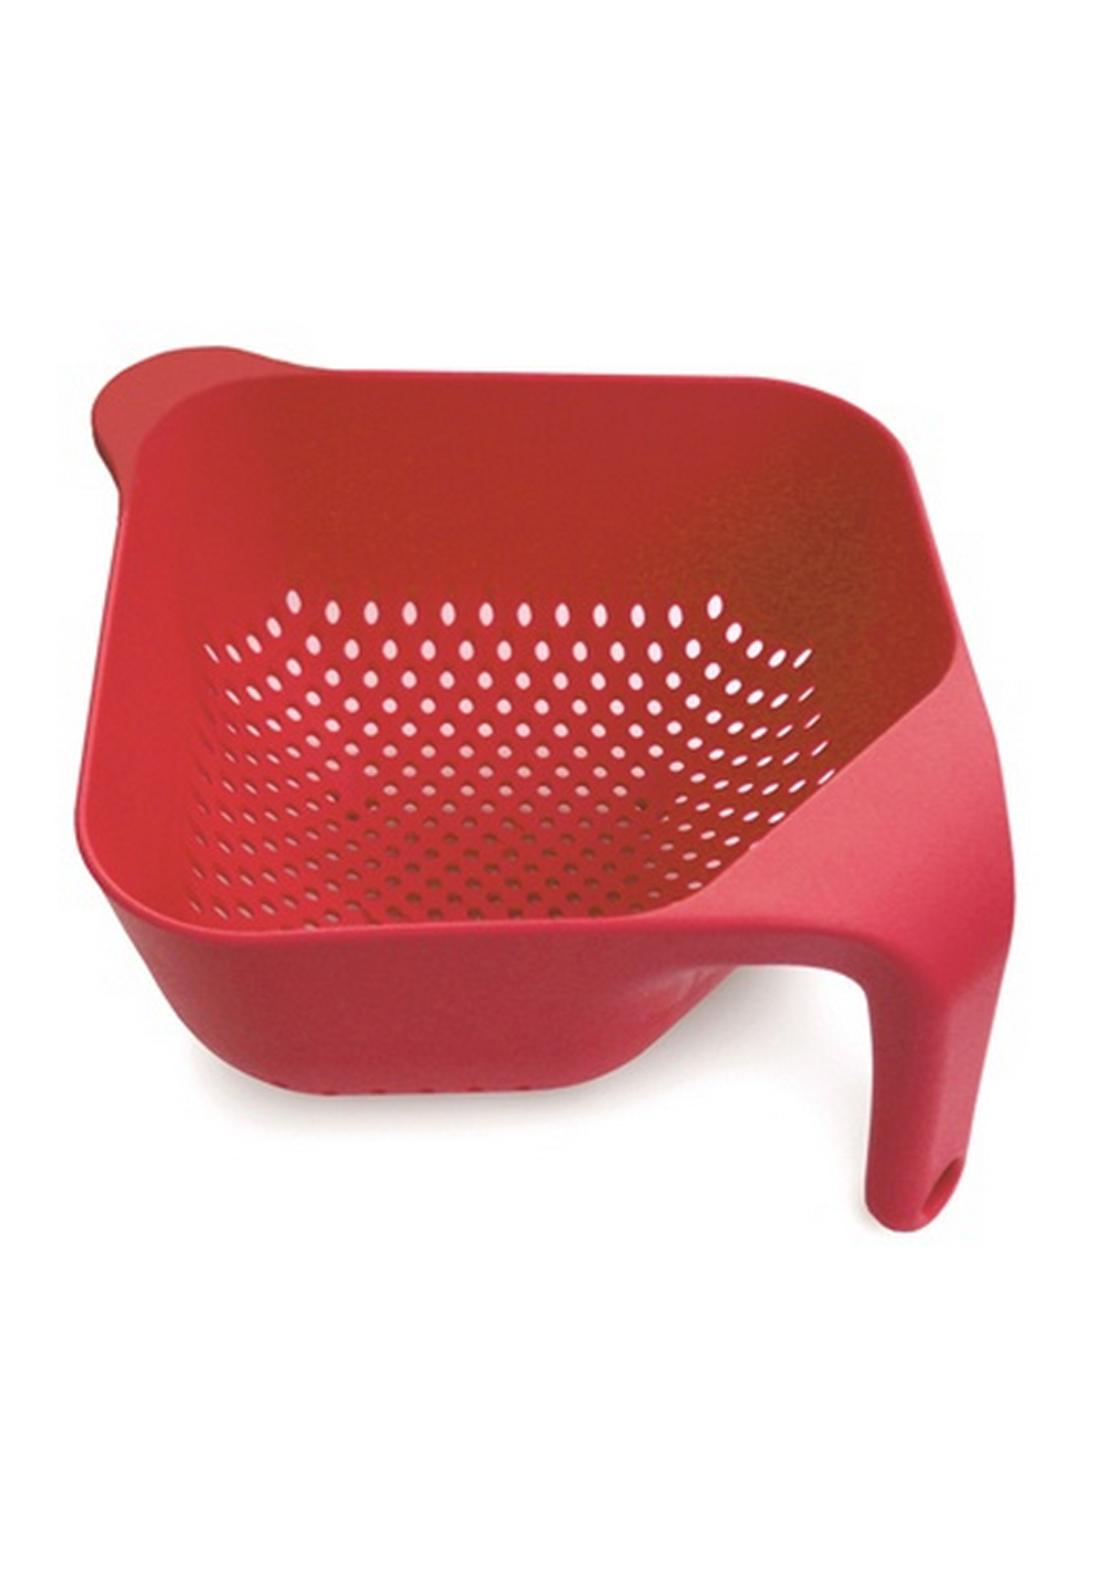 Joseph Joseph Square Colander Large, Red